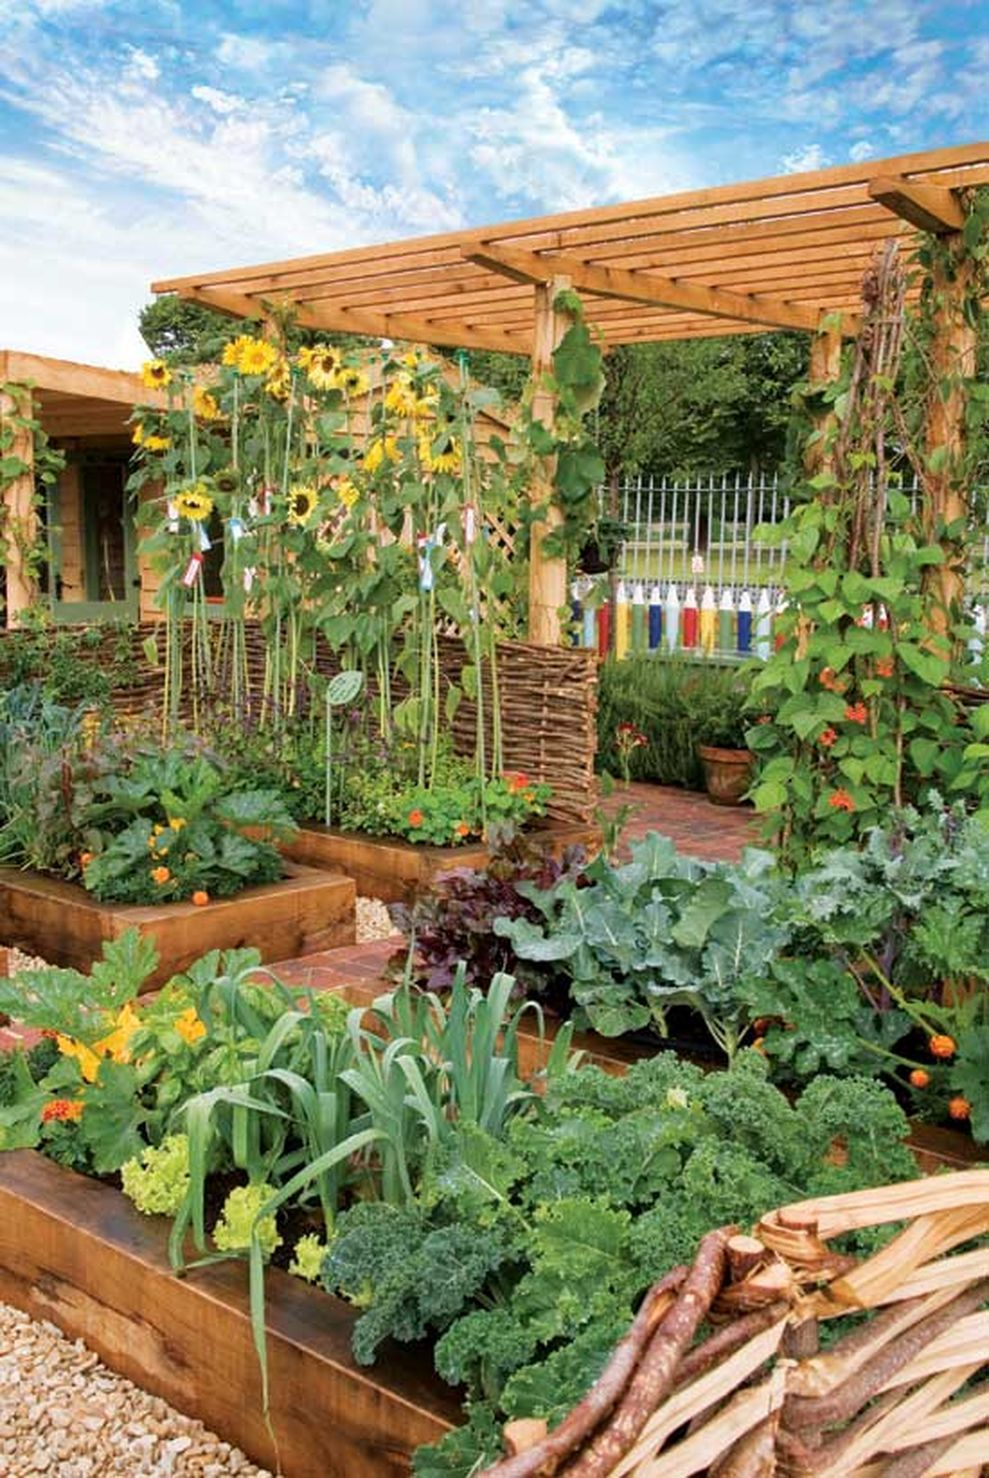 Vegetable garden design   Affordable Backyard Vegetable Garden Designs Ideas  How Does